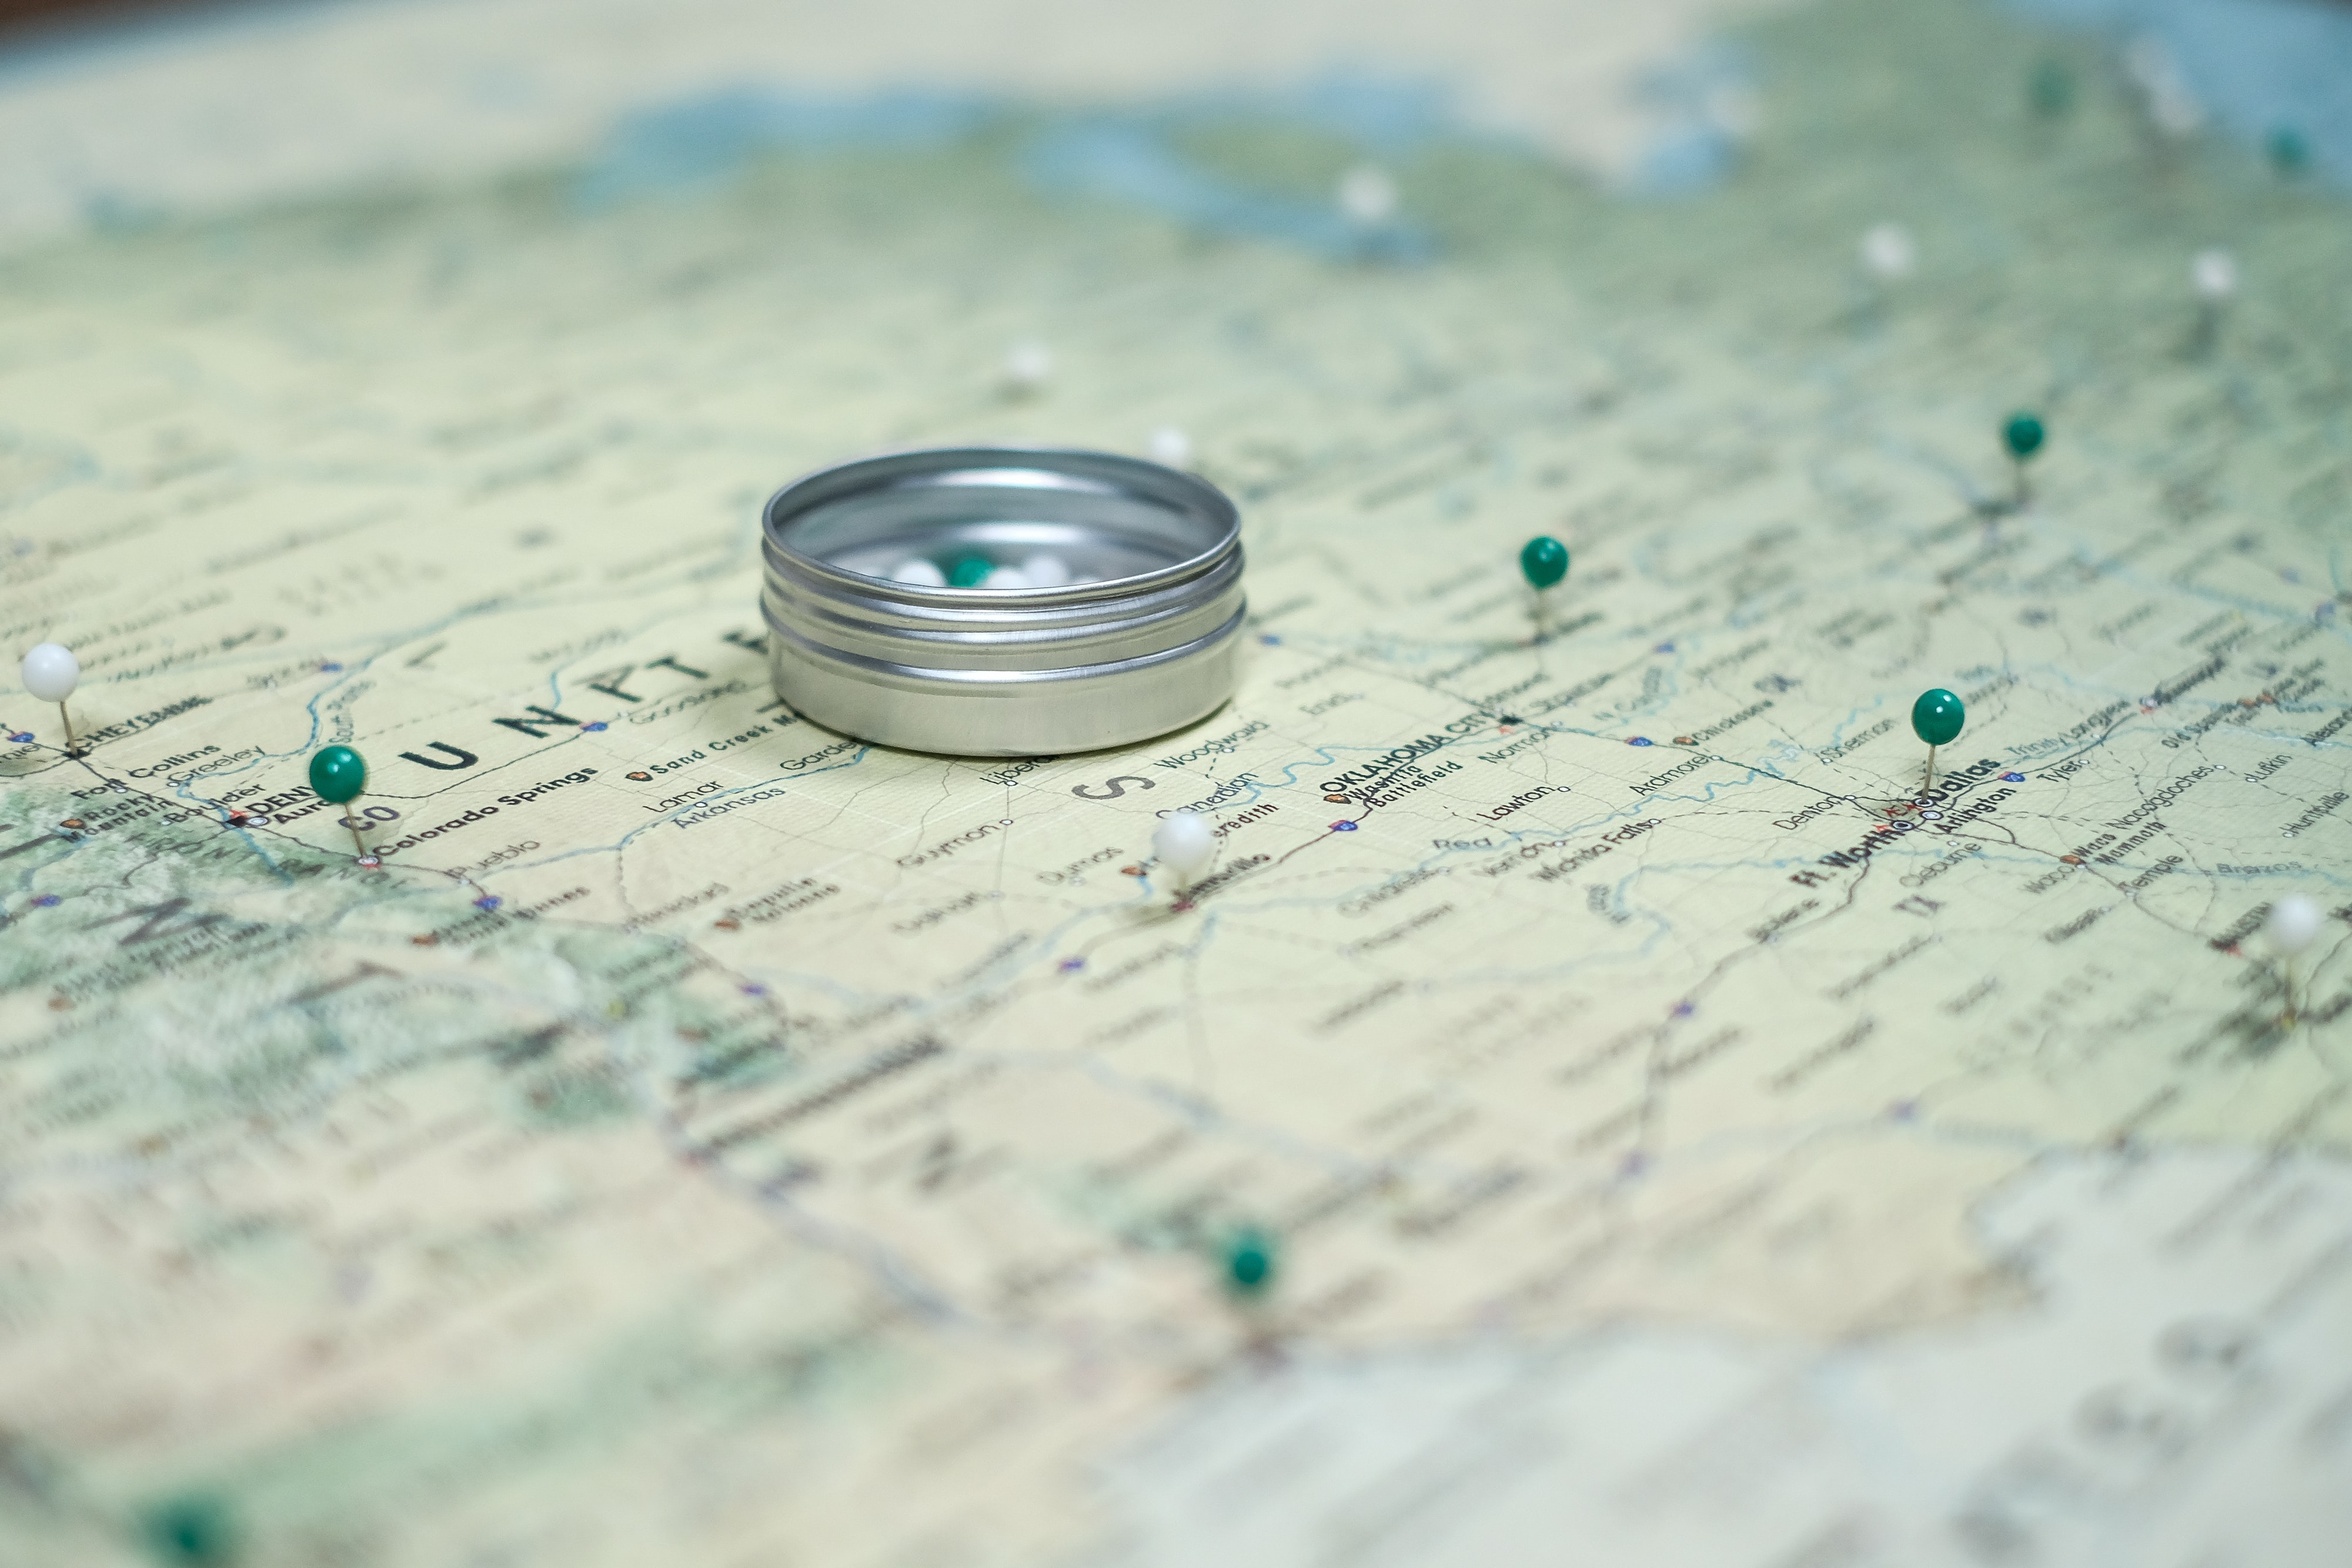 Cartography and its Essential Data Collection Strategies Used for Map-Making